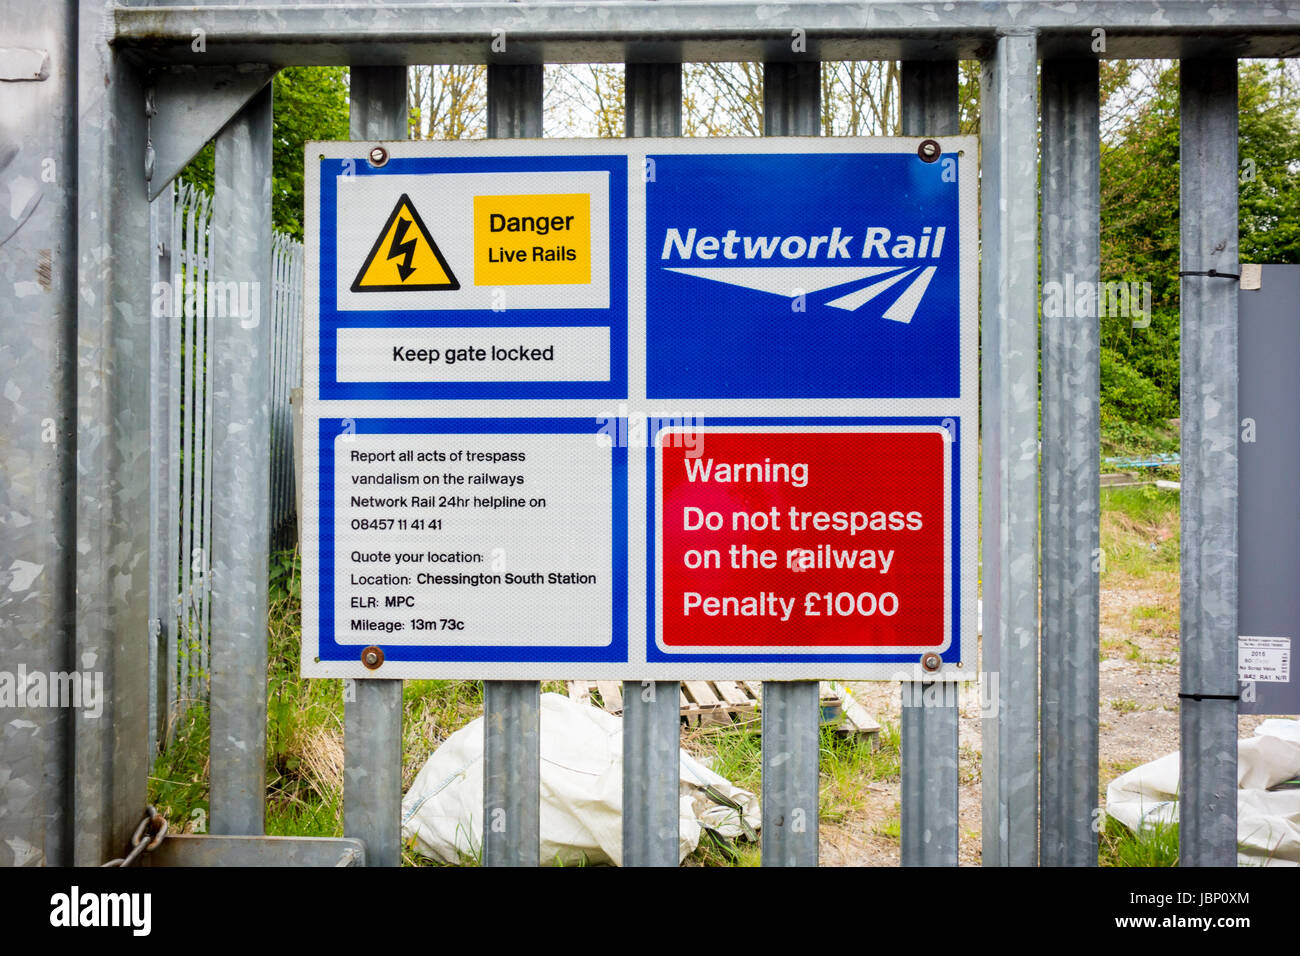 Network Rail warning sign on a fence. Danger Live Rails, do not trespass on the railway. UK - Stock Image